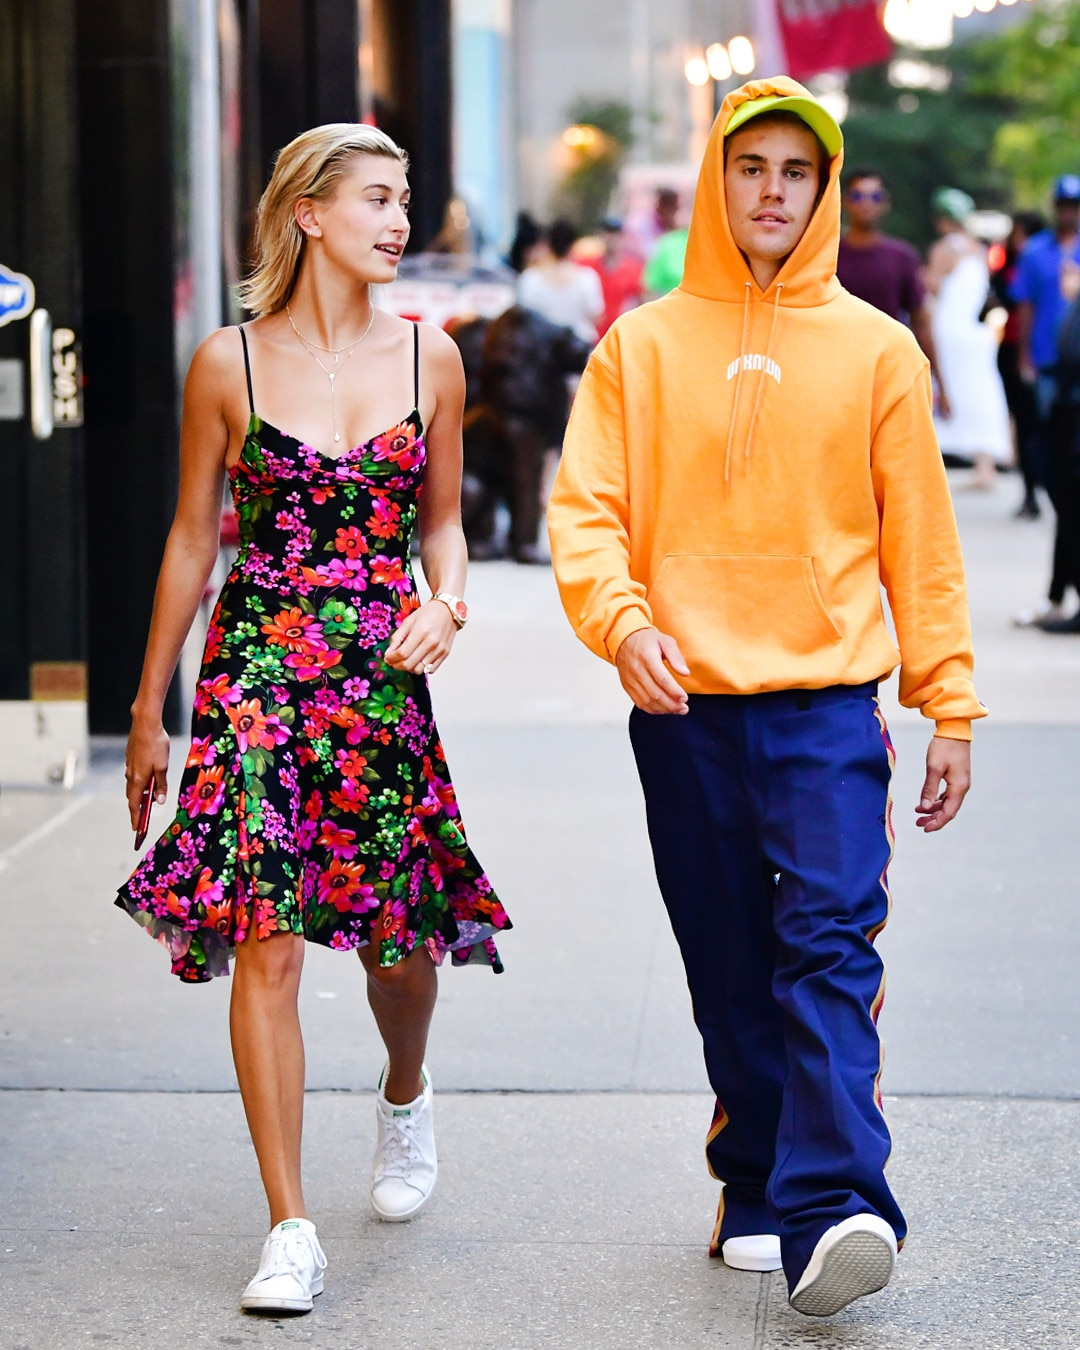 Justin Bieber explains why he was crying with fiancée Hailey Baldwin